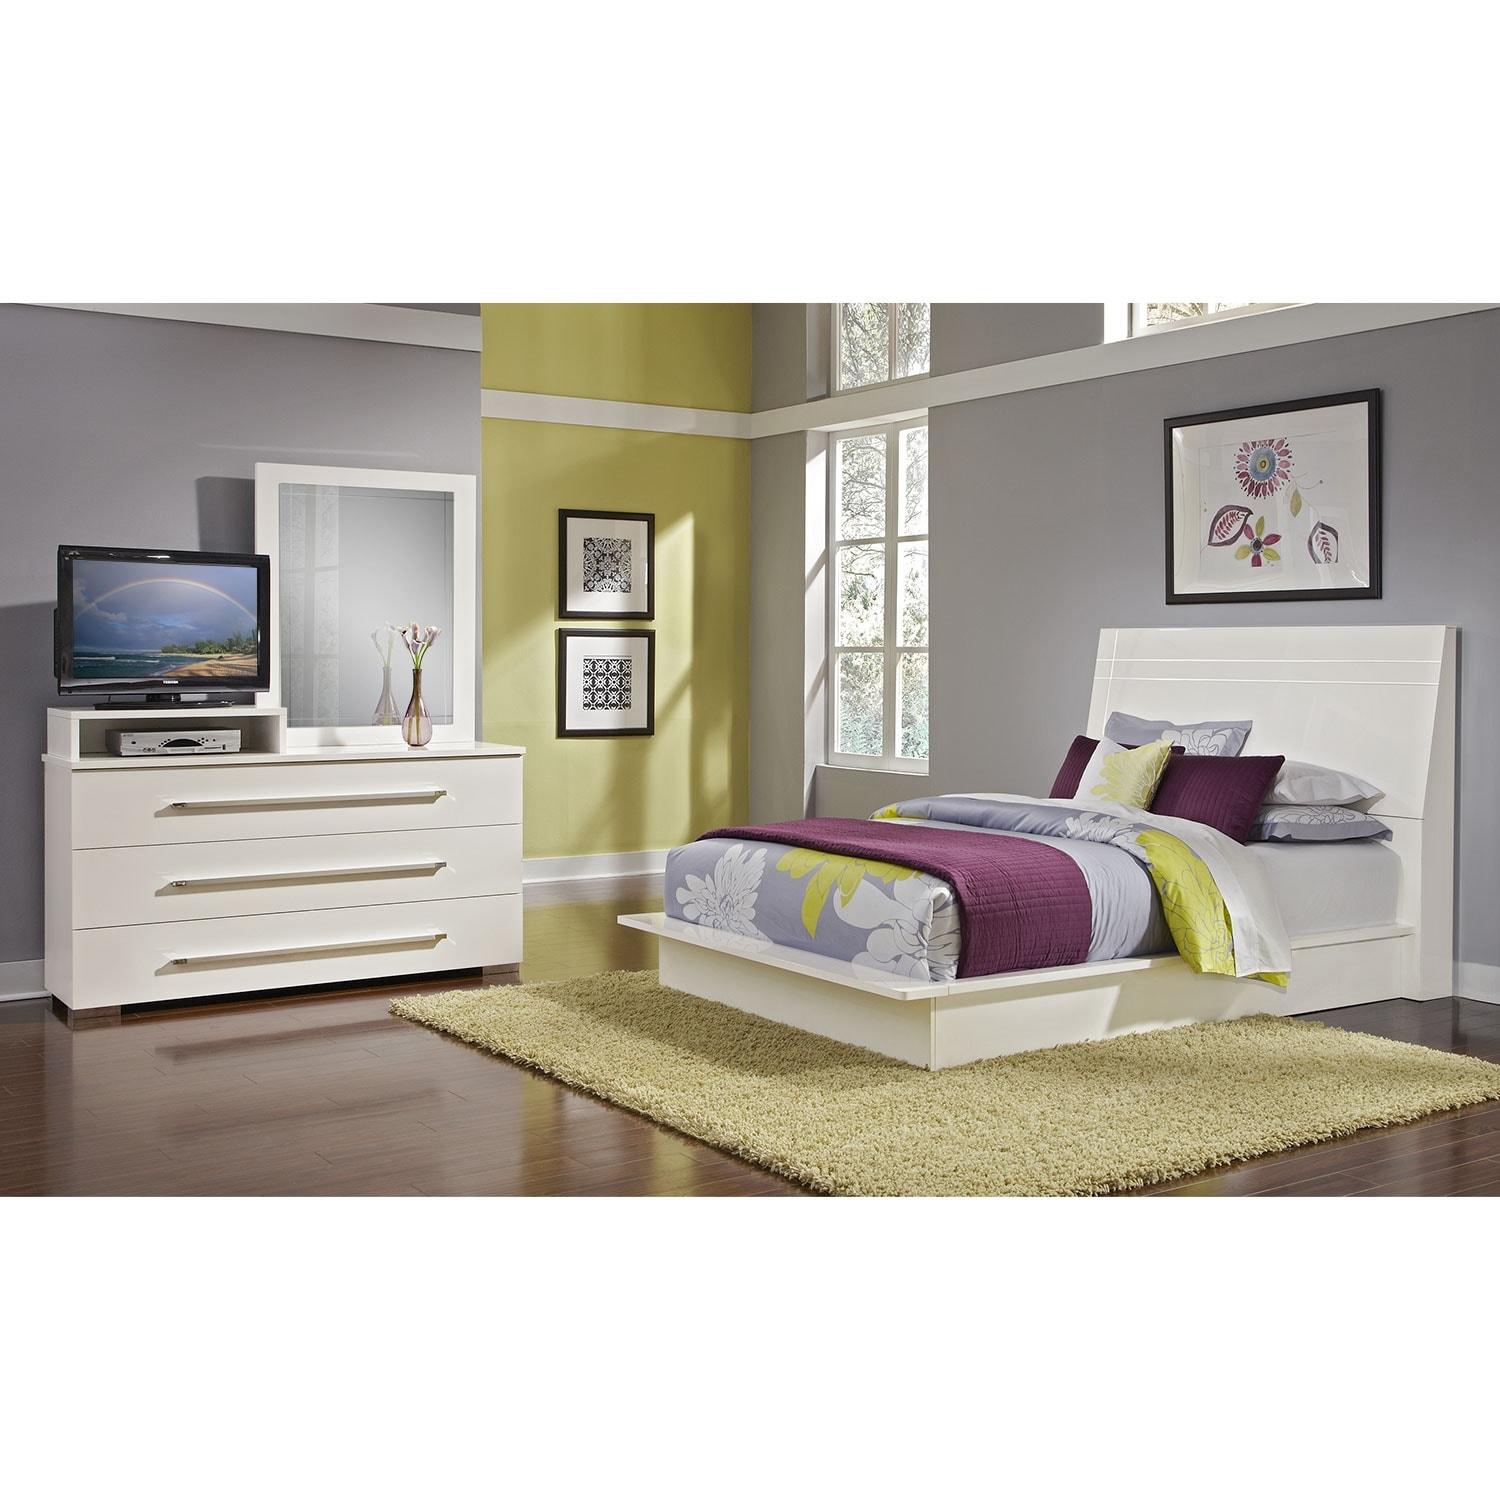 Bedroom Furniture - Dimora White II 5 Pc. Queen Bedroom